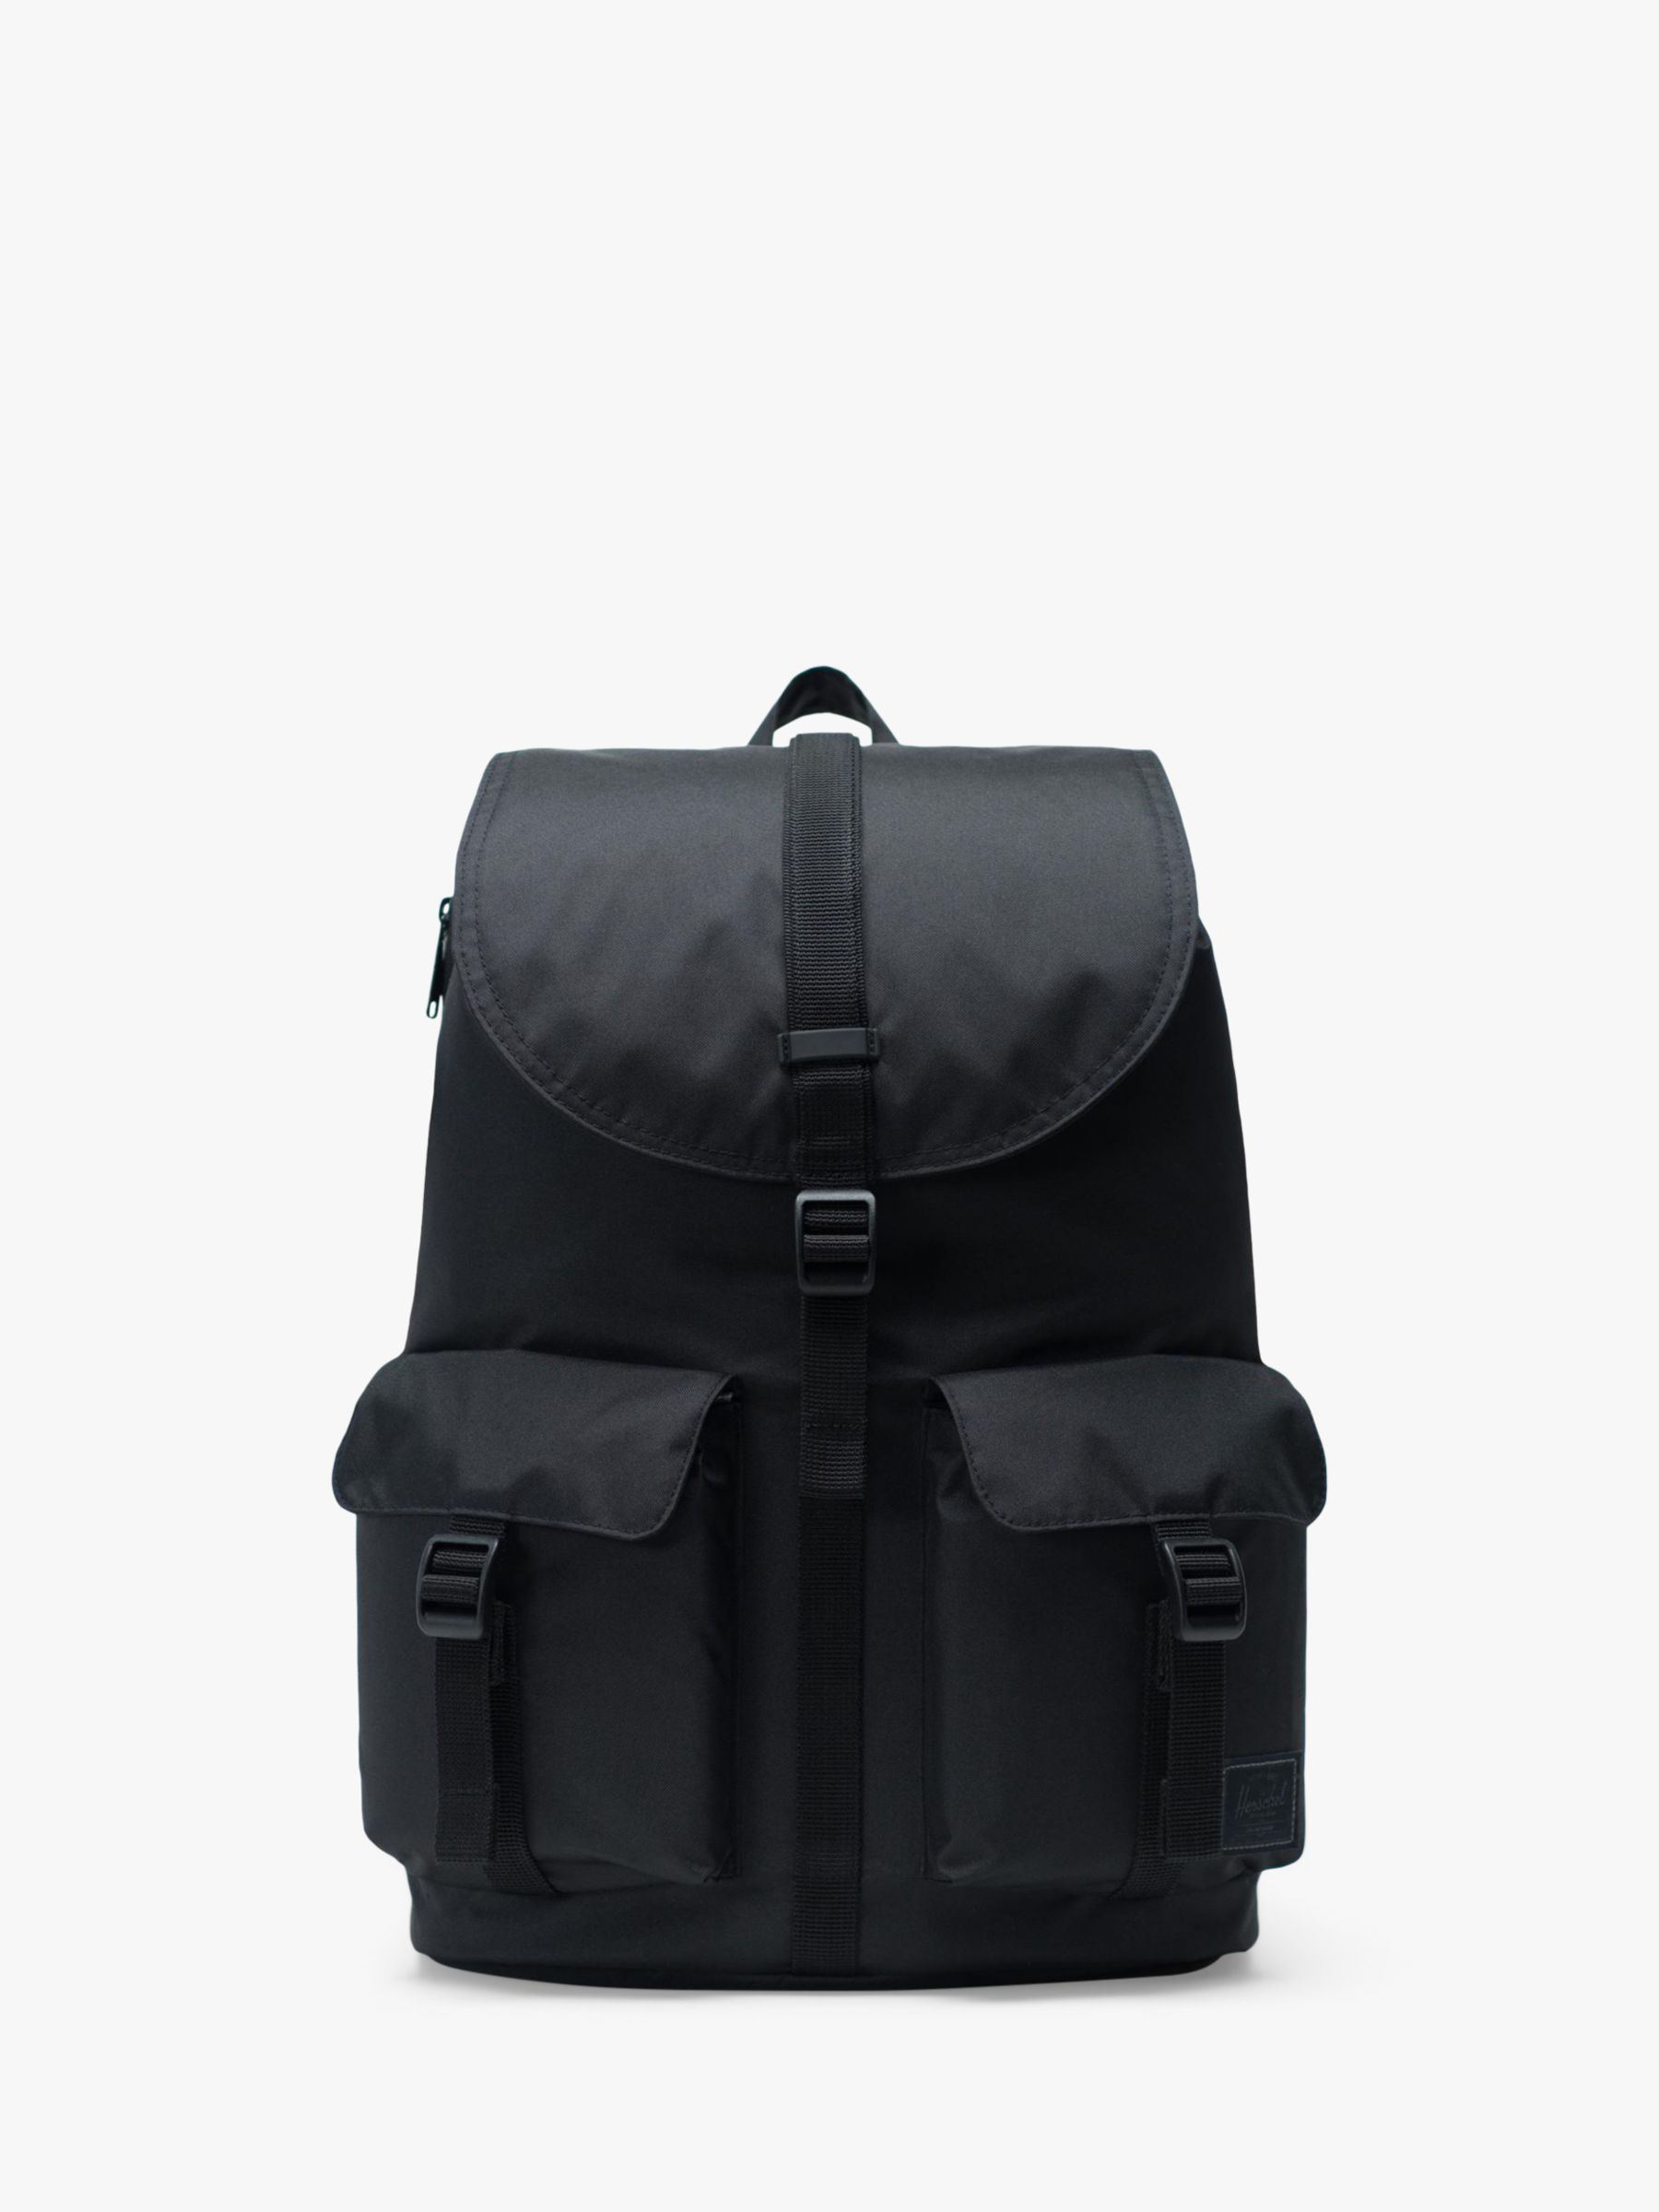 Herschel Supply Co. Herschel Supply Co. Dawson Backpack